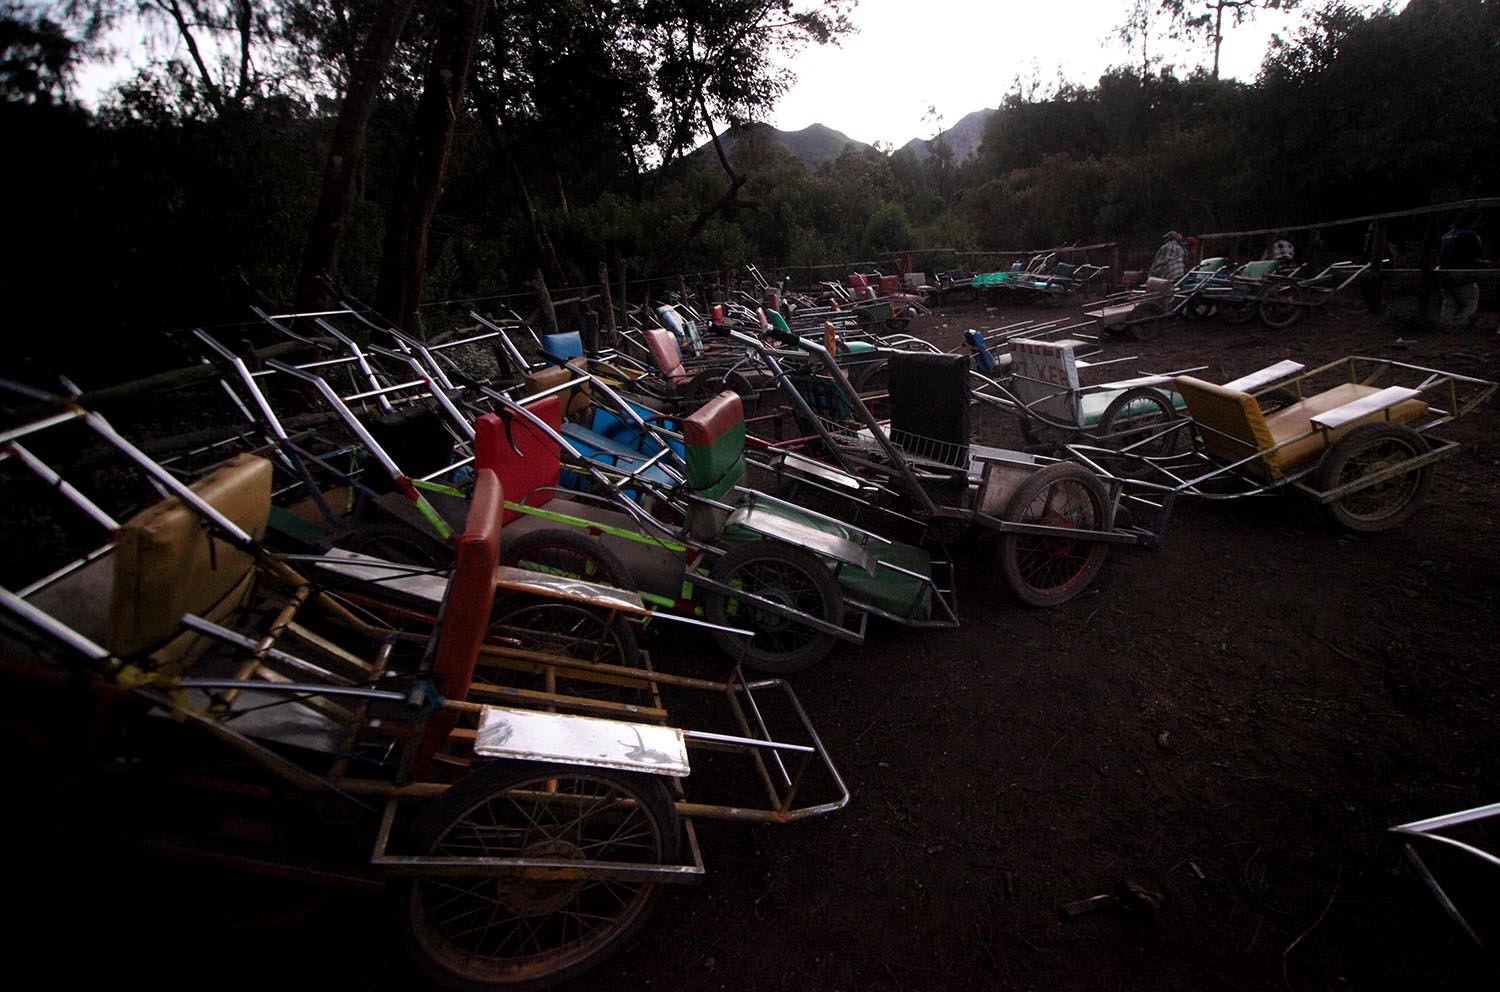 Hundreds of carts await travelers at Mount Ijen. JP/Boy T Harjanto